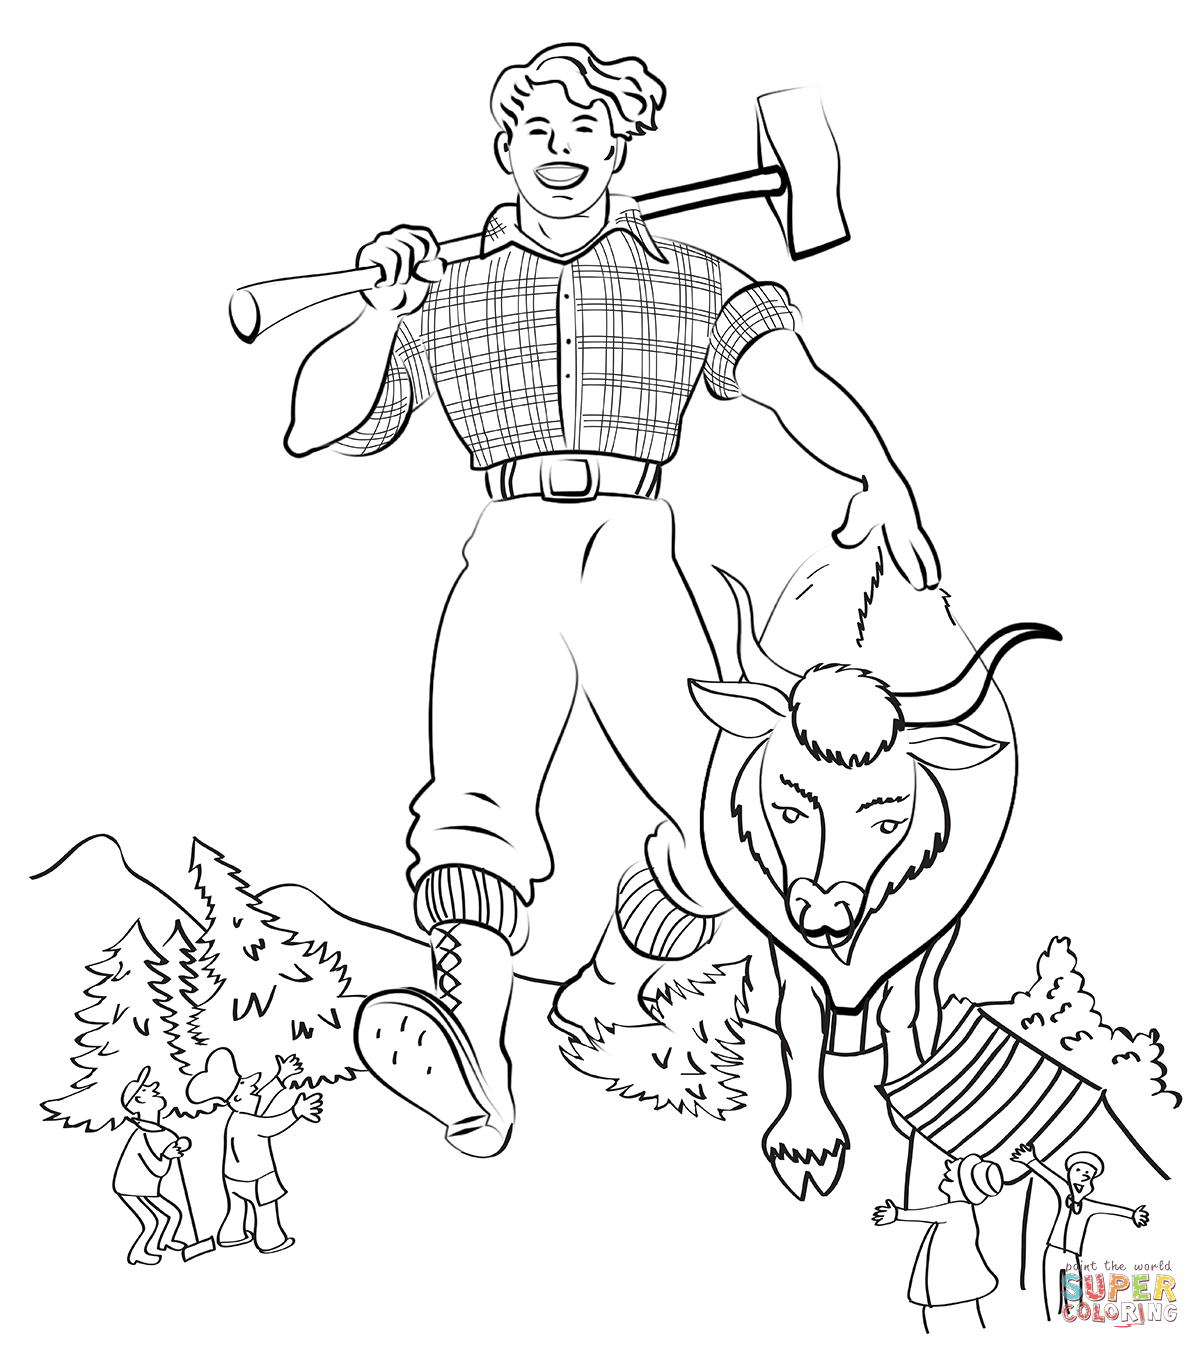 Paul Bunyan and Babe the Blue Ox coloring page | Free Printable ...